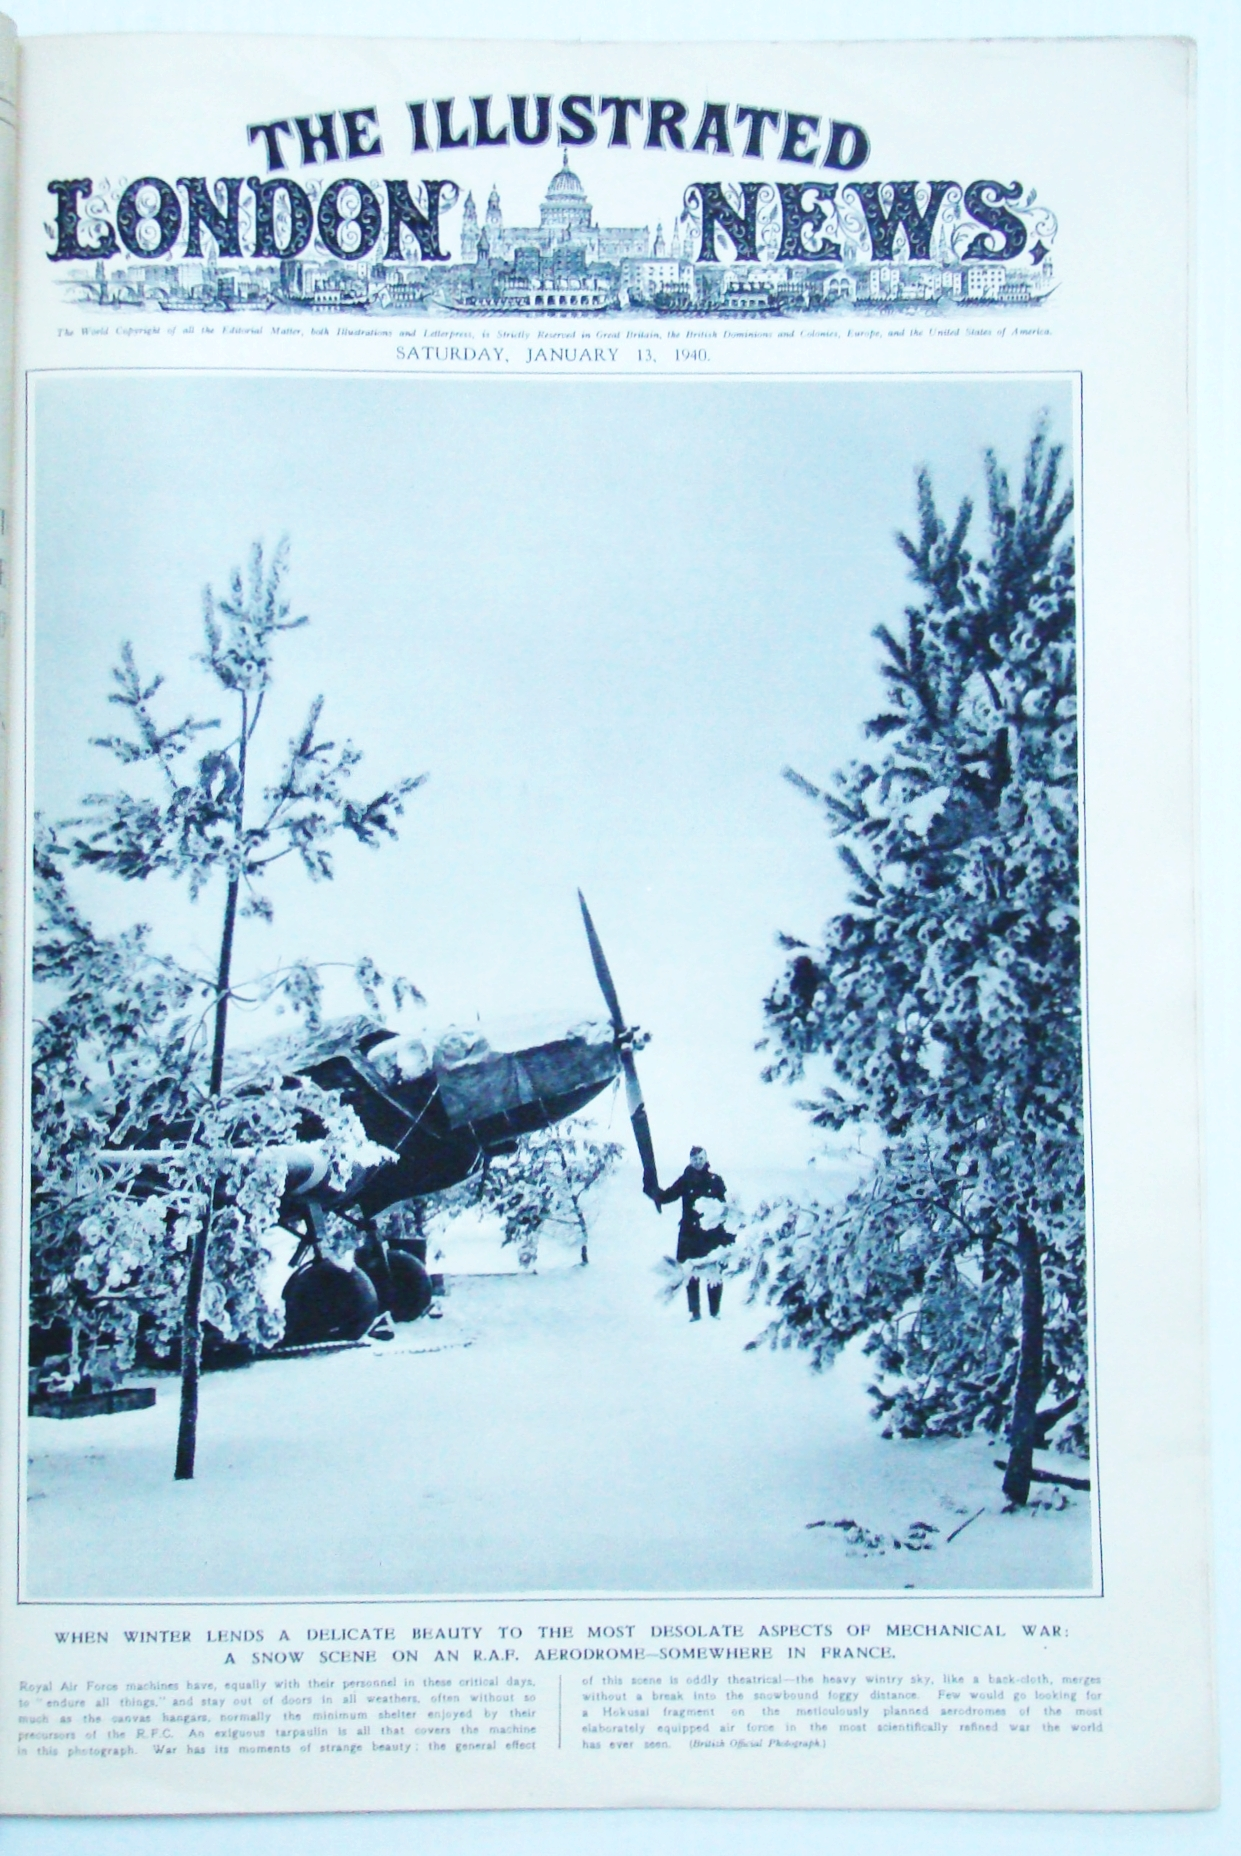 Image for The Illustrated London News, January (Jan) 13, 1940 - British Maginot Section Under Fire / The Grim War in Finland